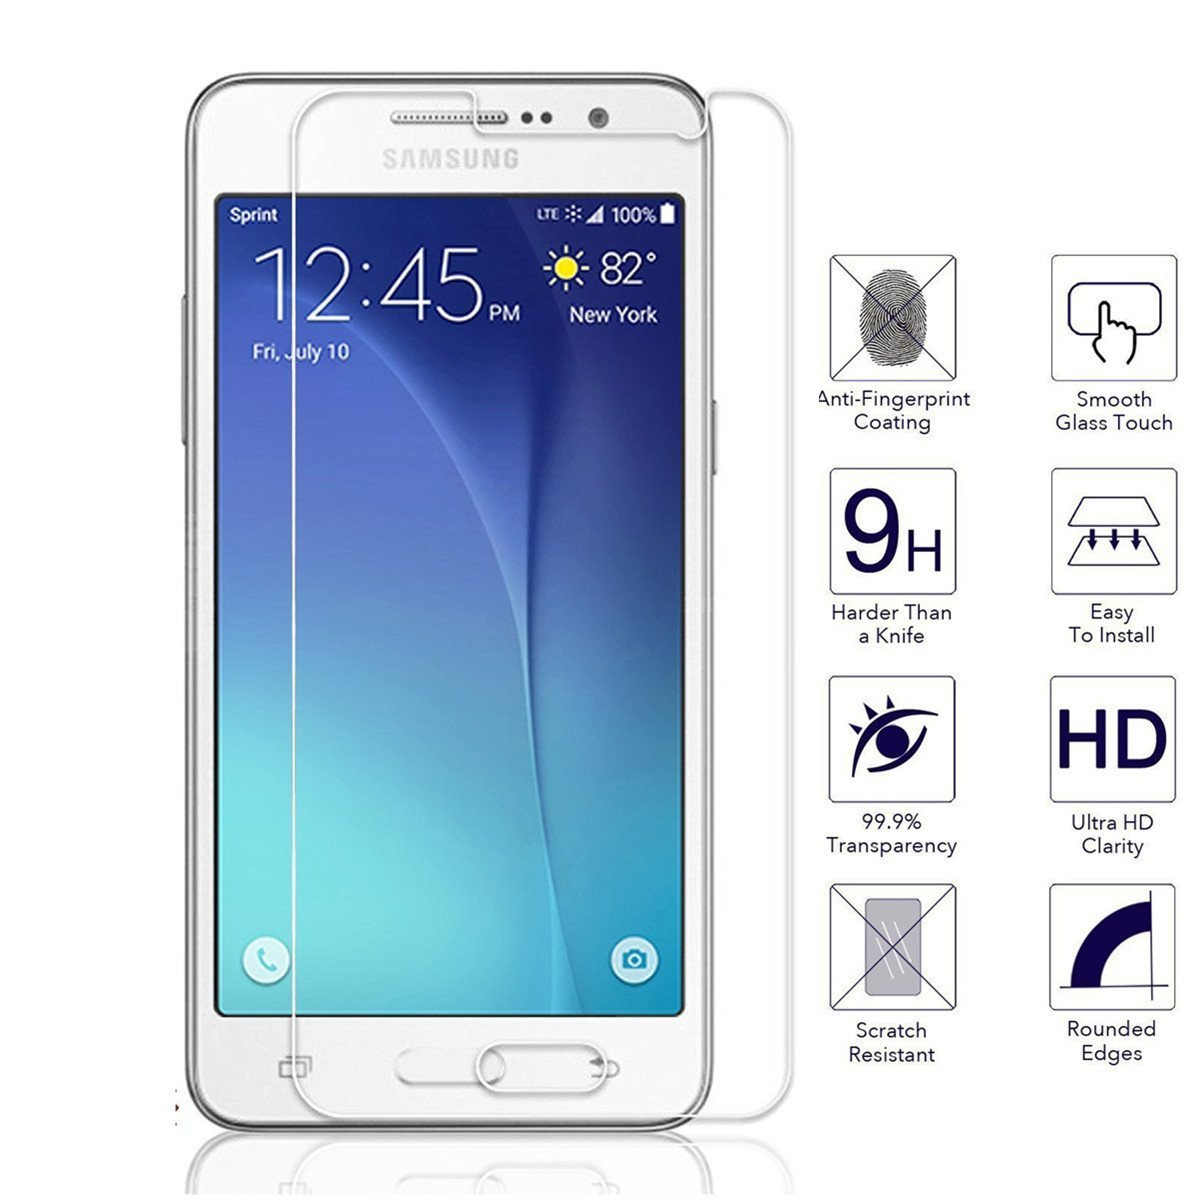 Tempered Glass For Samsung Galaxy S3 S4 S5 NEO S6 J7 J5 J3 J1 2016 Core J2 Prime G360 G361F Grand Prime VE G530 G531F G531HTempered Glass For Samsung Galaxy S3 S4 S5 NEO S6 J7 J5 J3 J1 2016 Core J2 Prime G360 G361F Grand Prime VE G530 G531F G531H